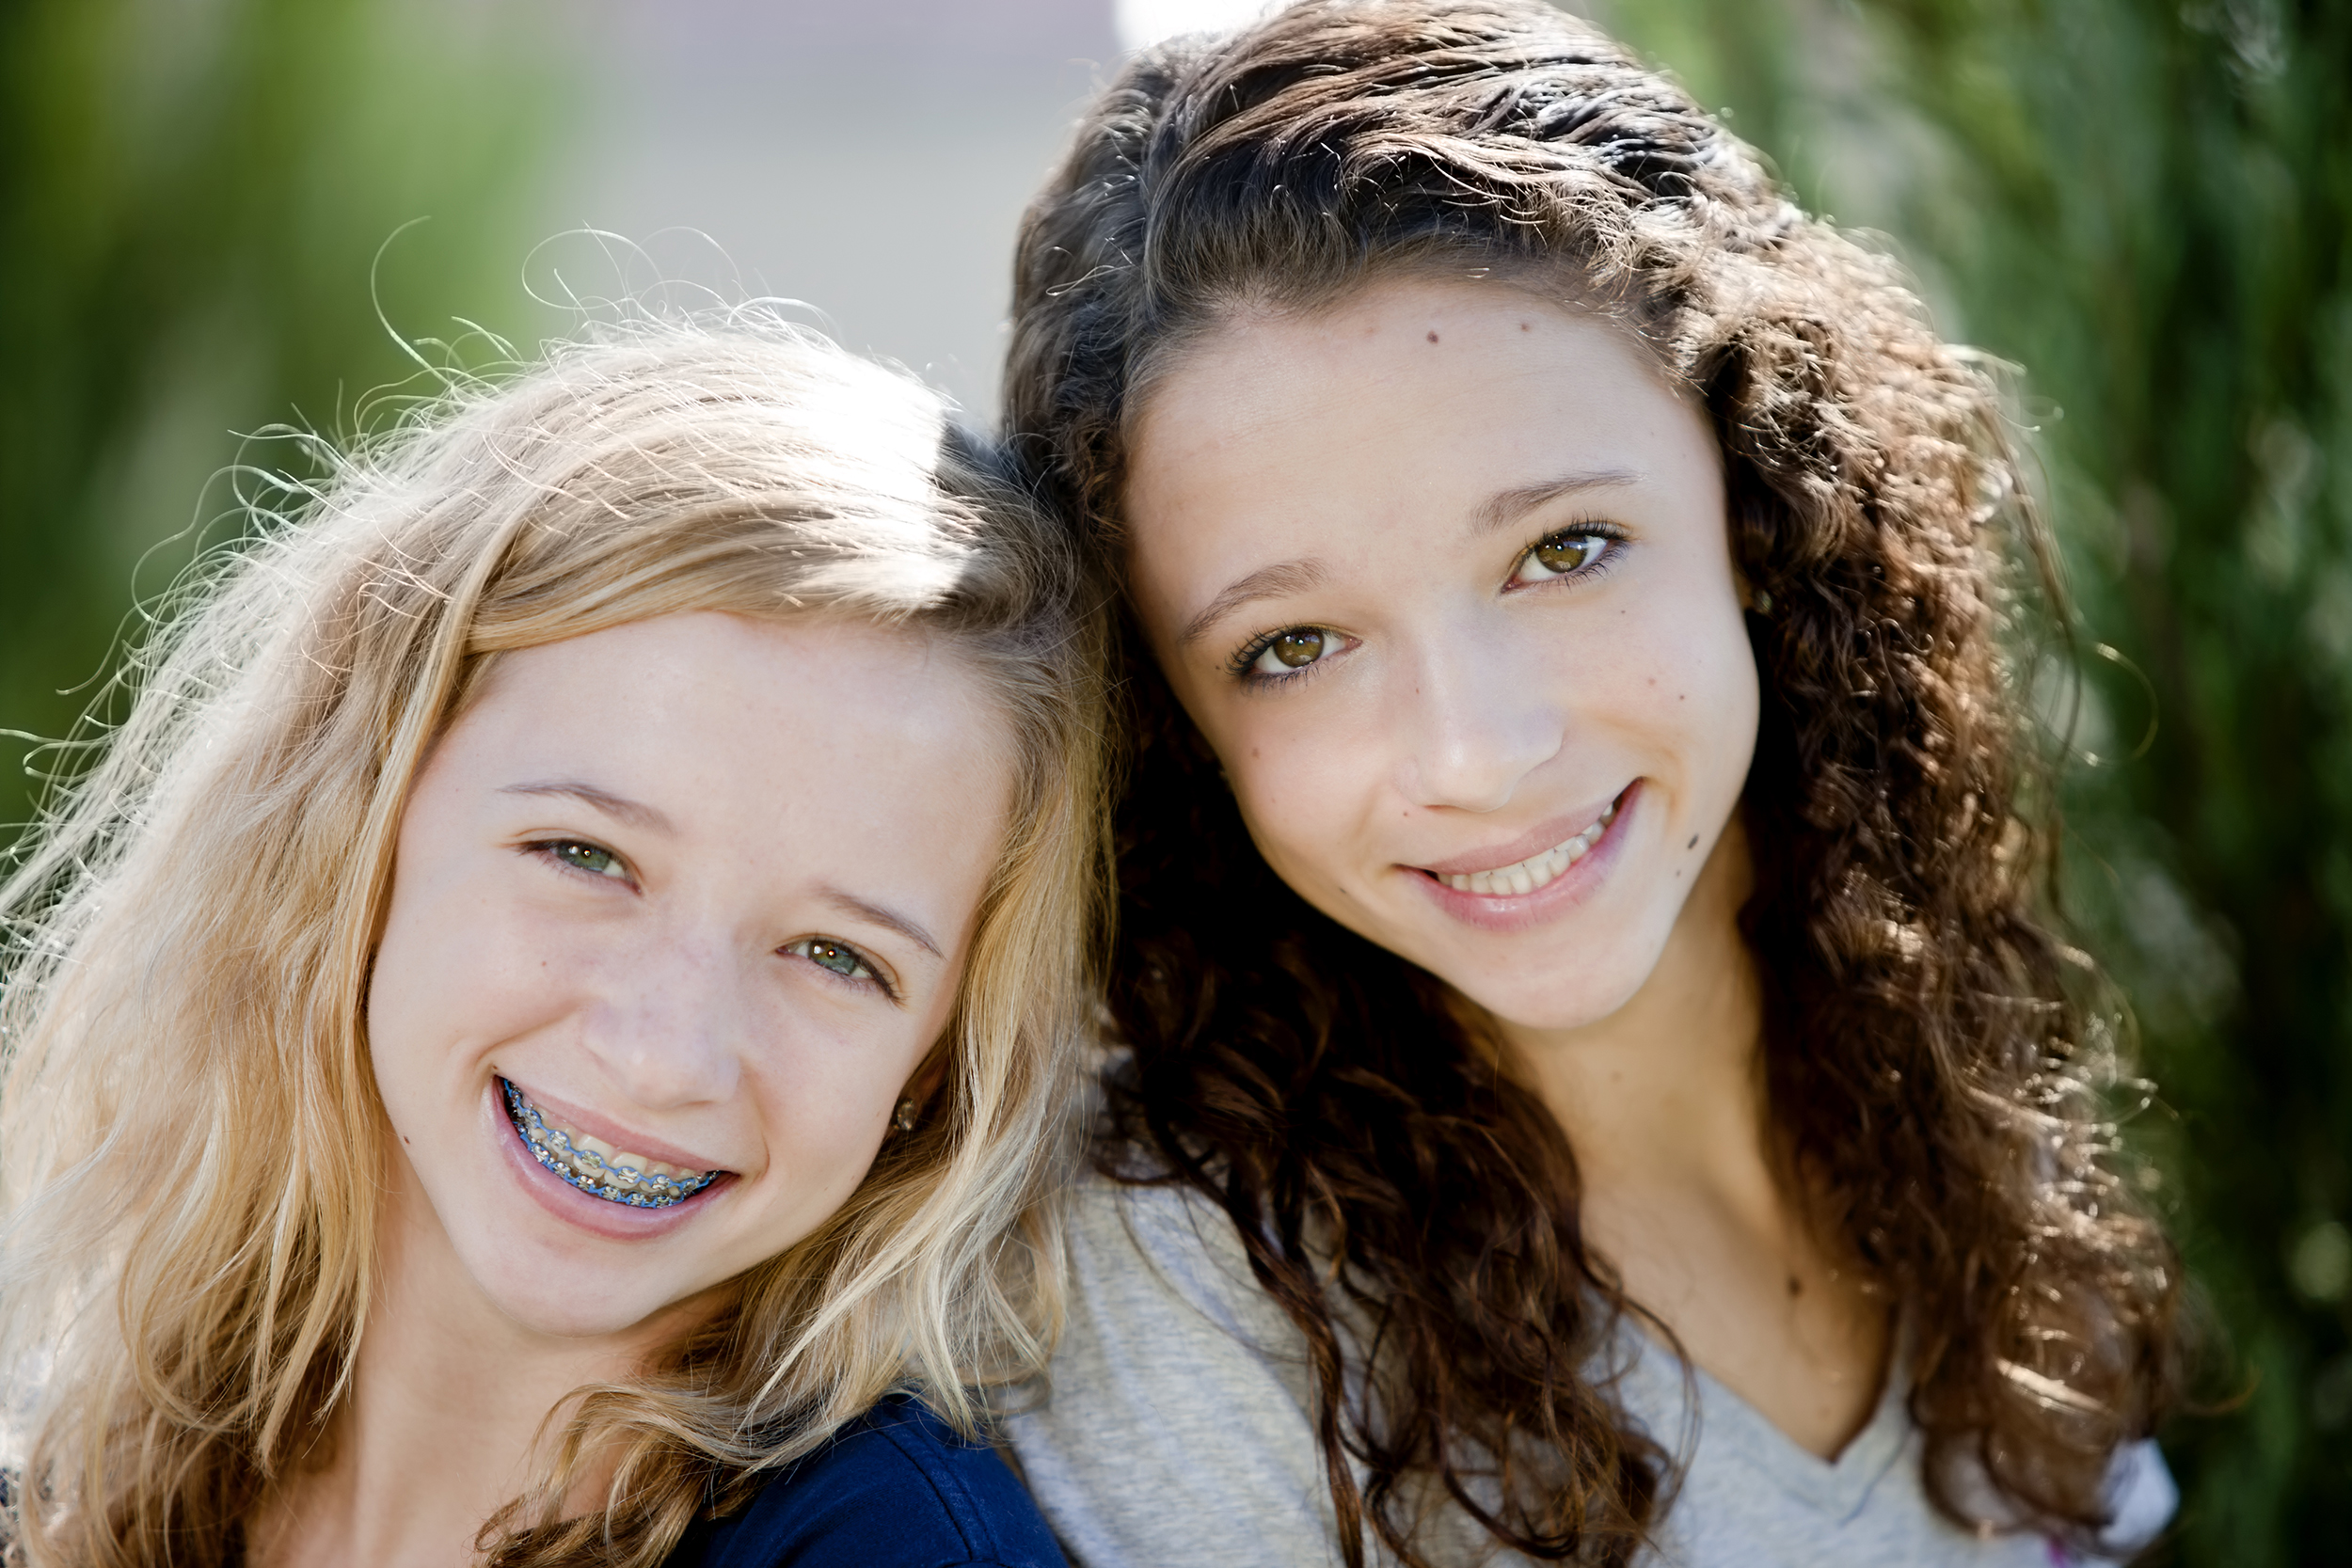 Young Girls with Braces Smiling